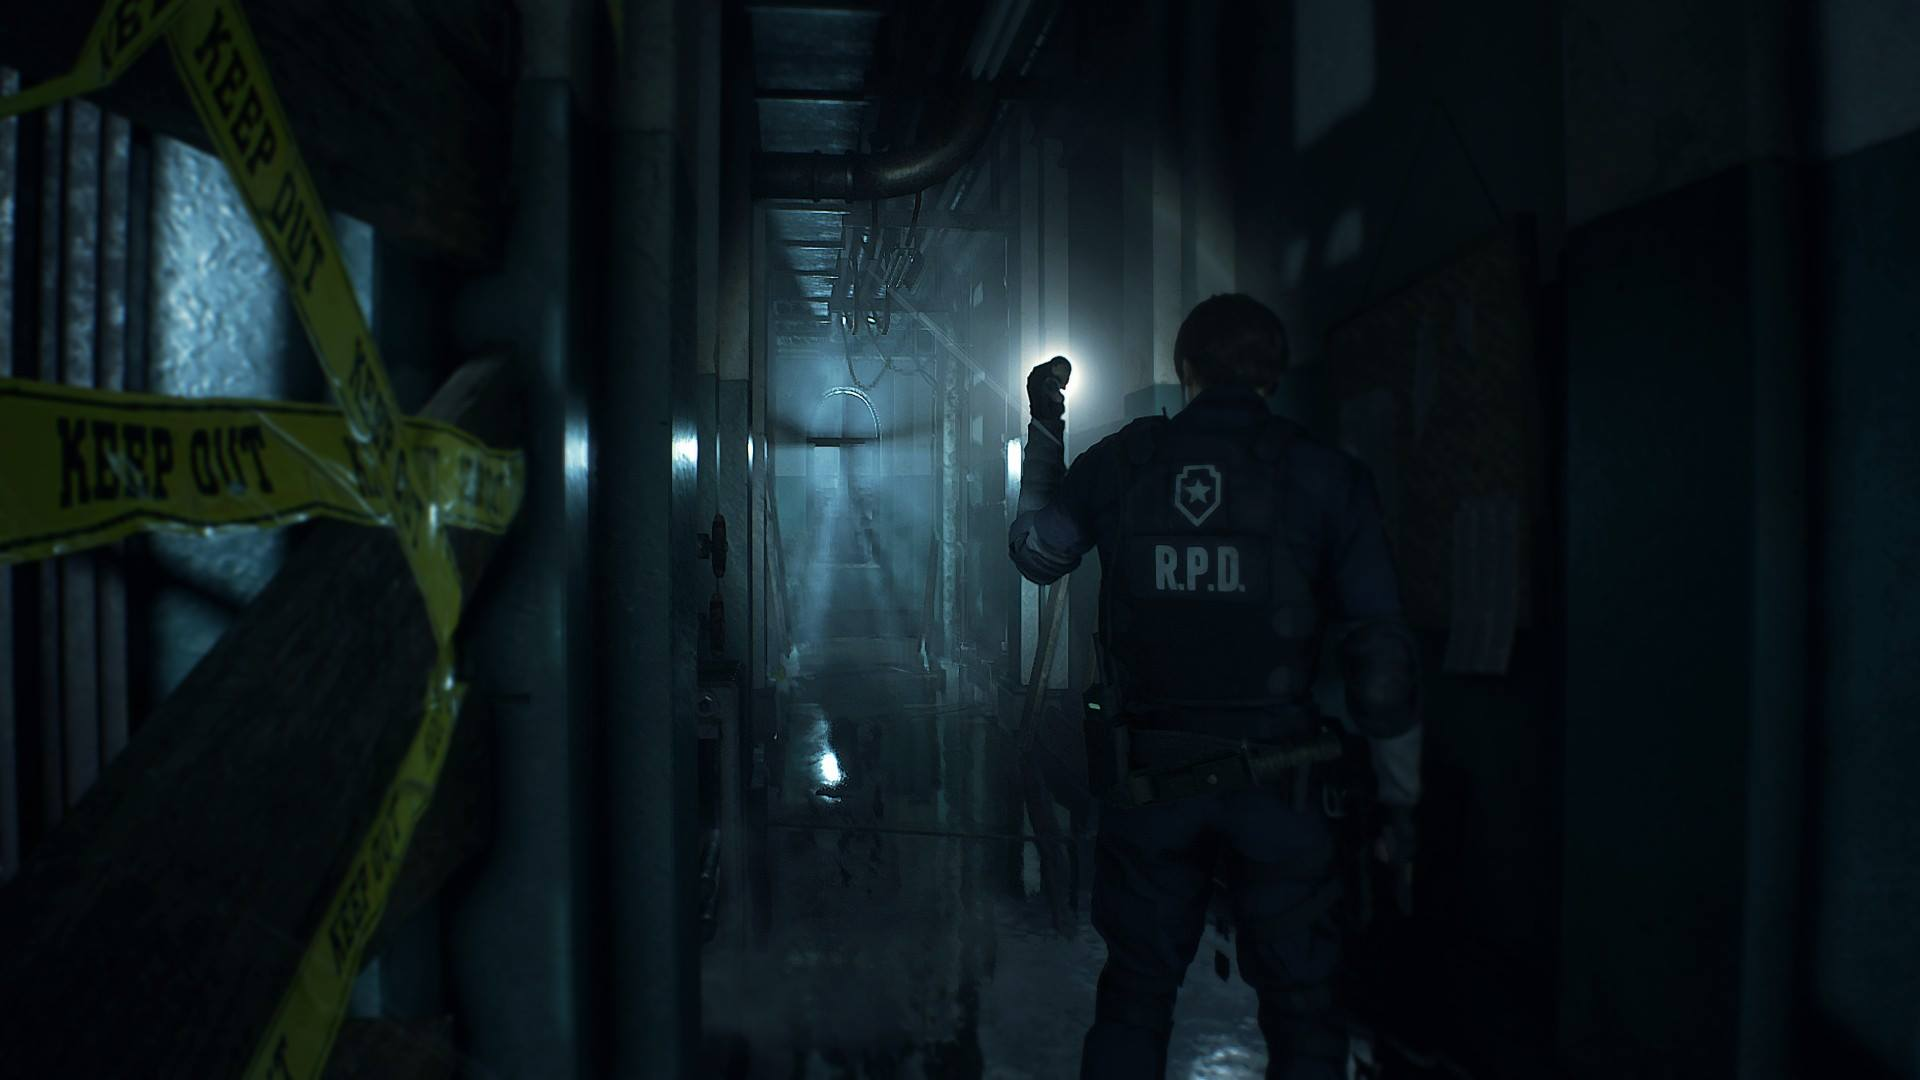 Resident Evil 2 Remake Revealed, January 2019 Release Date Confirmed